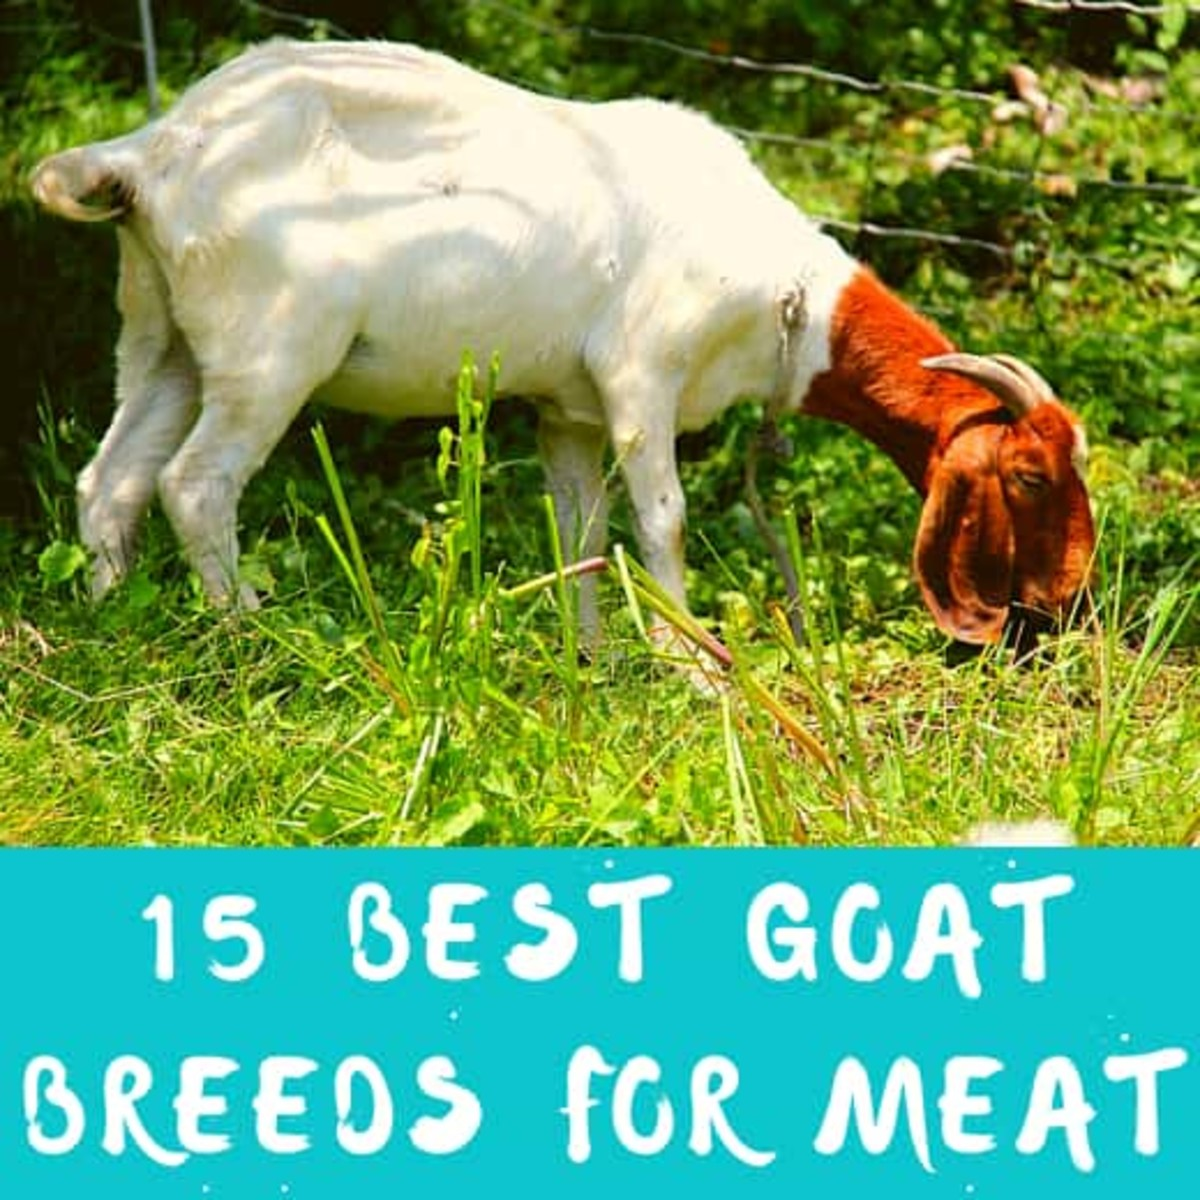 Top 15 Best Goat Breeds For Meat